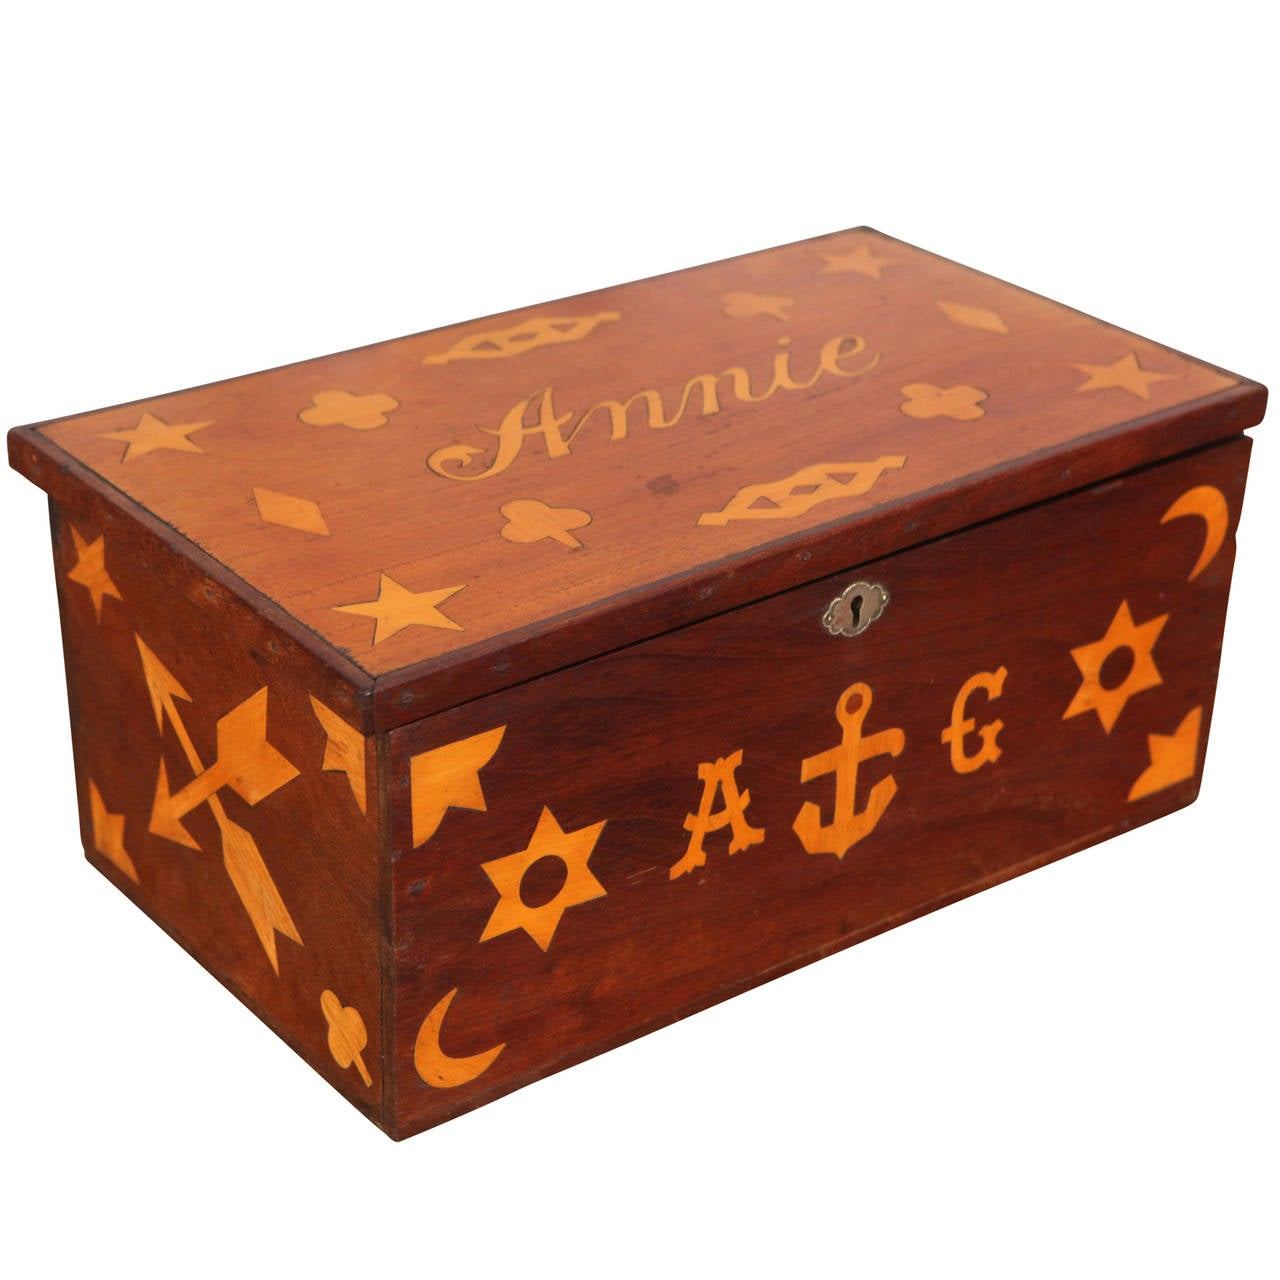 Antique Inlaid Sailor Box